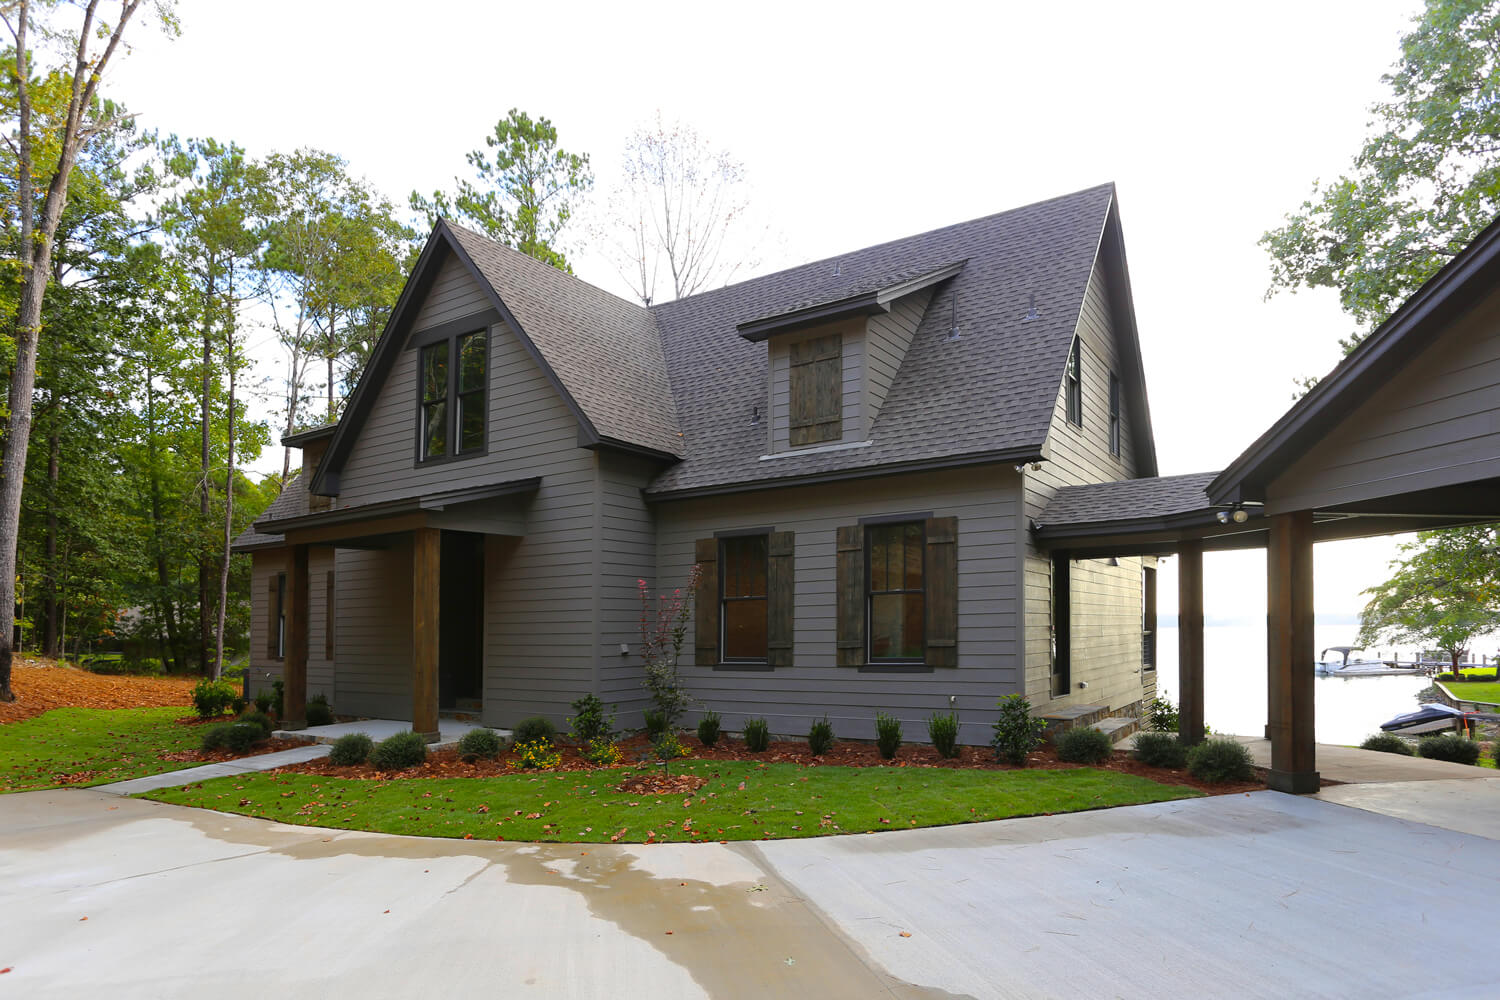 Lake House - Street Side Elevation - Designed by Foshee Architecture